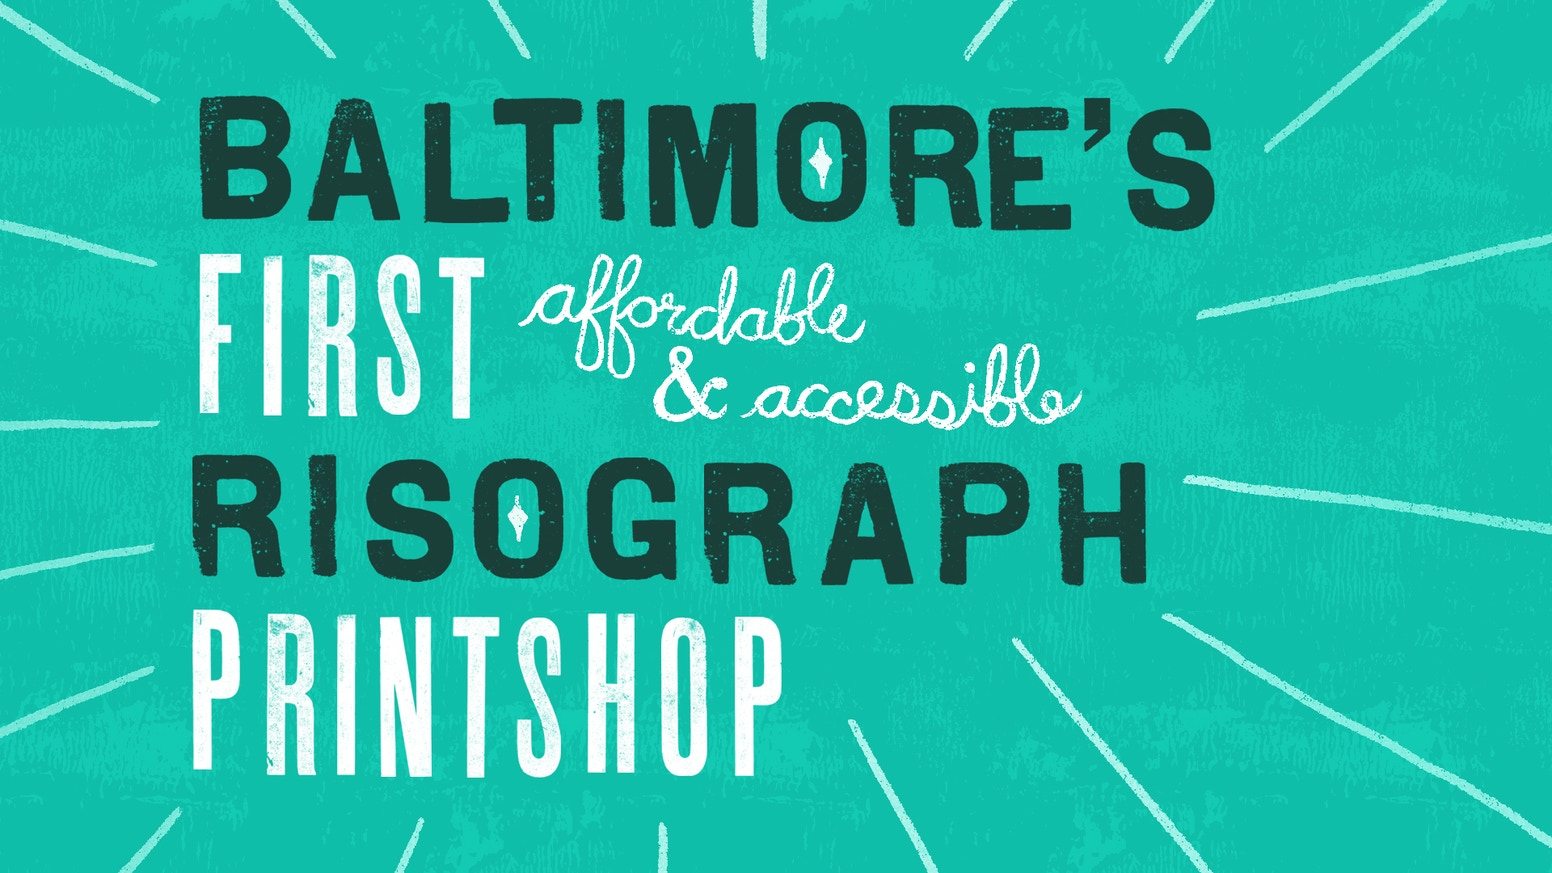 By fixing Ralph (our risograph) we can add risograph printing as a tool for the Baltimore arts community!